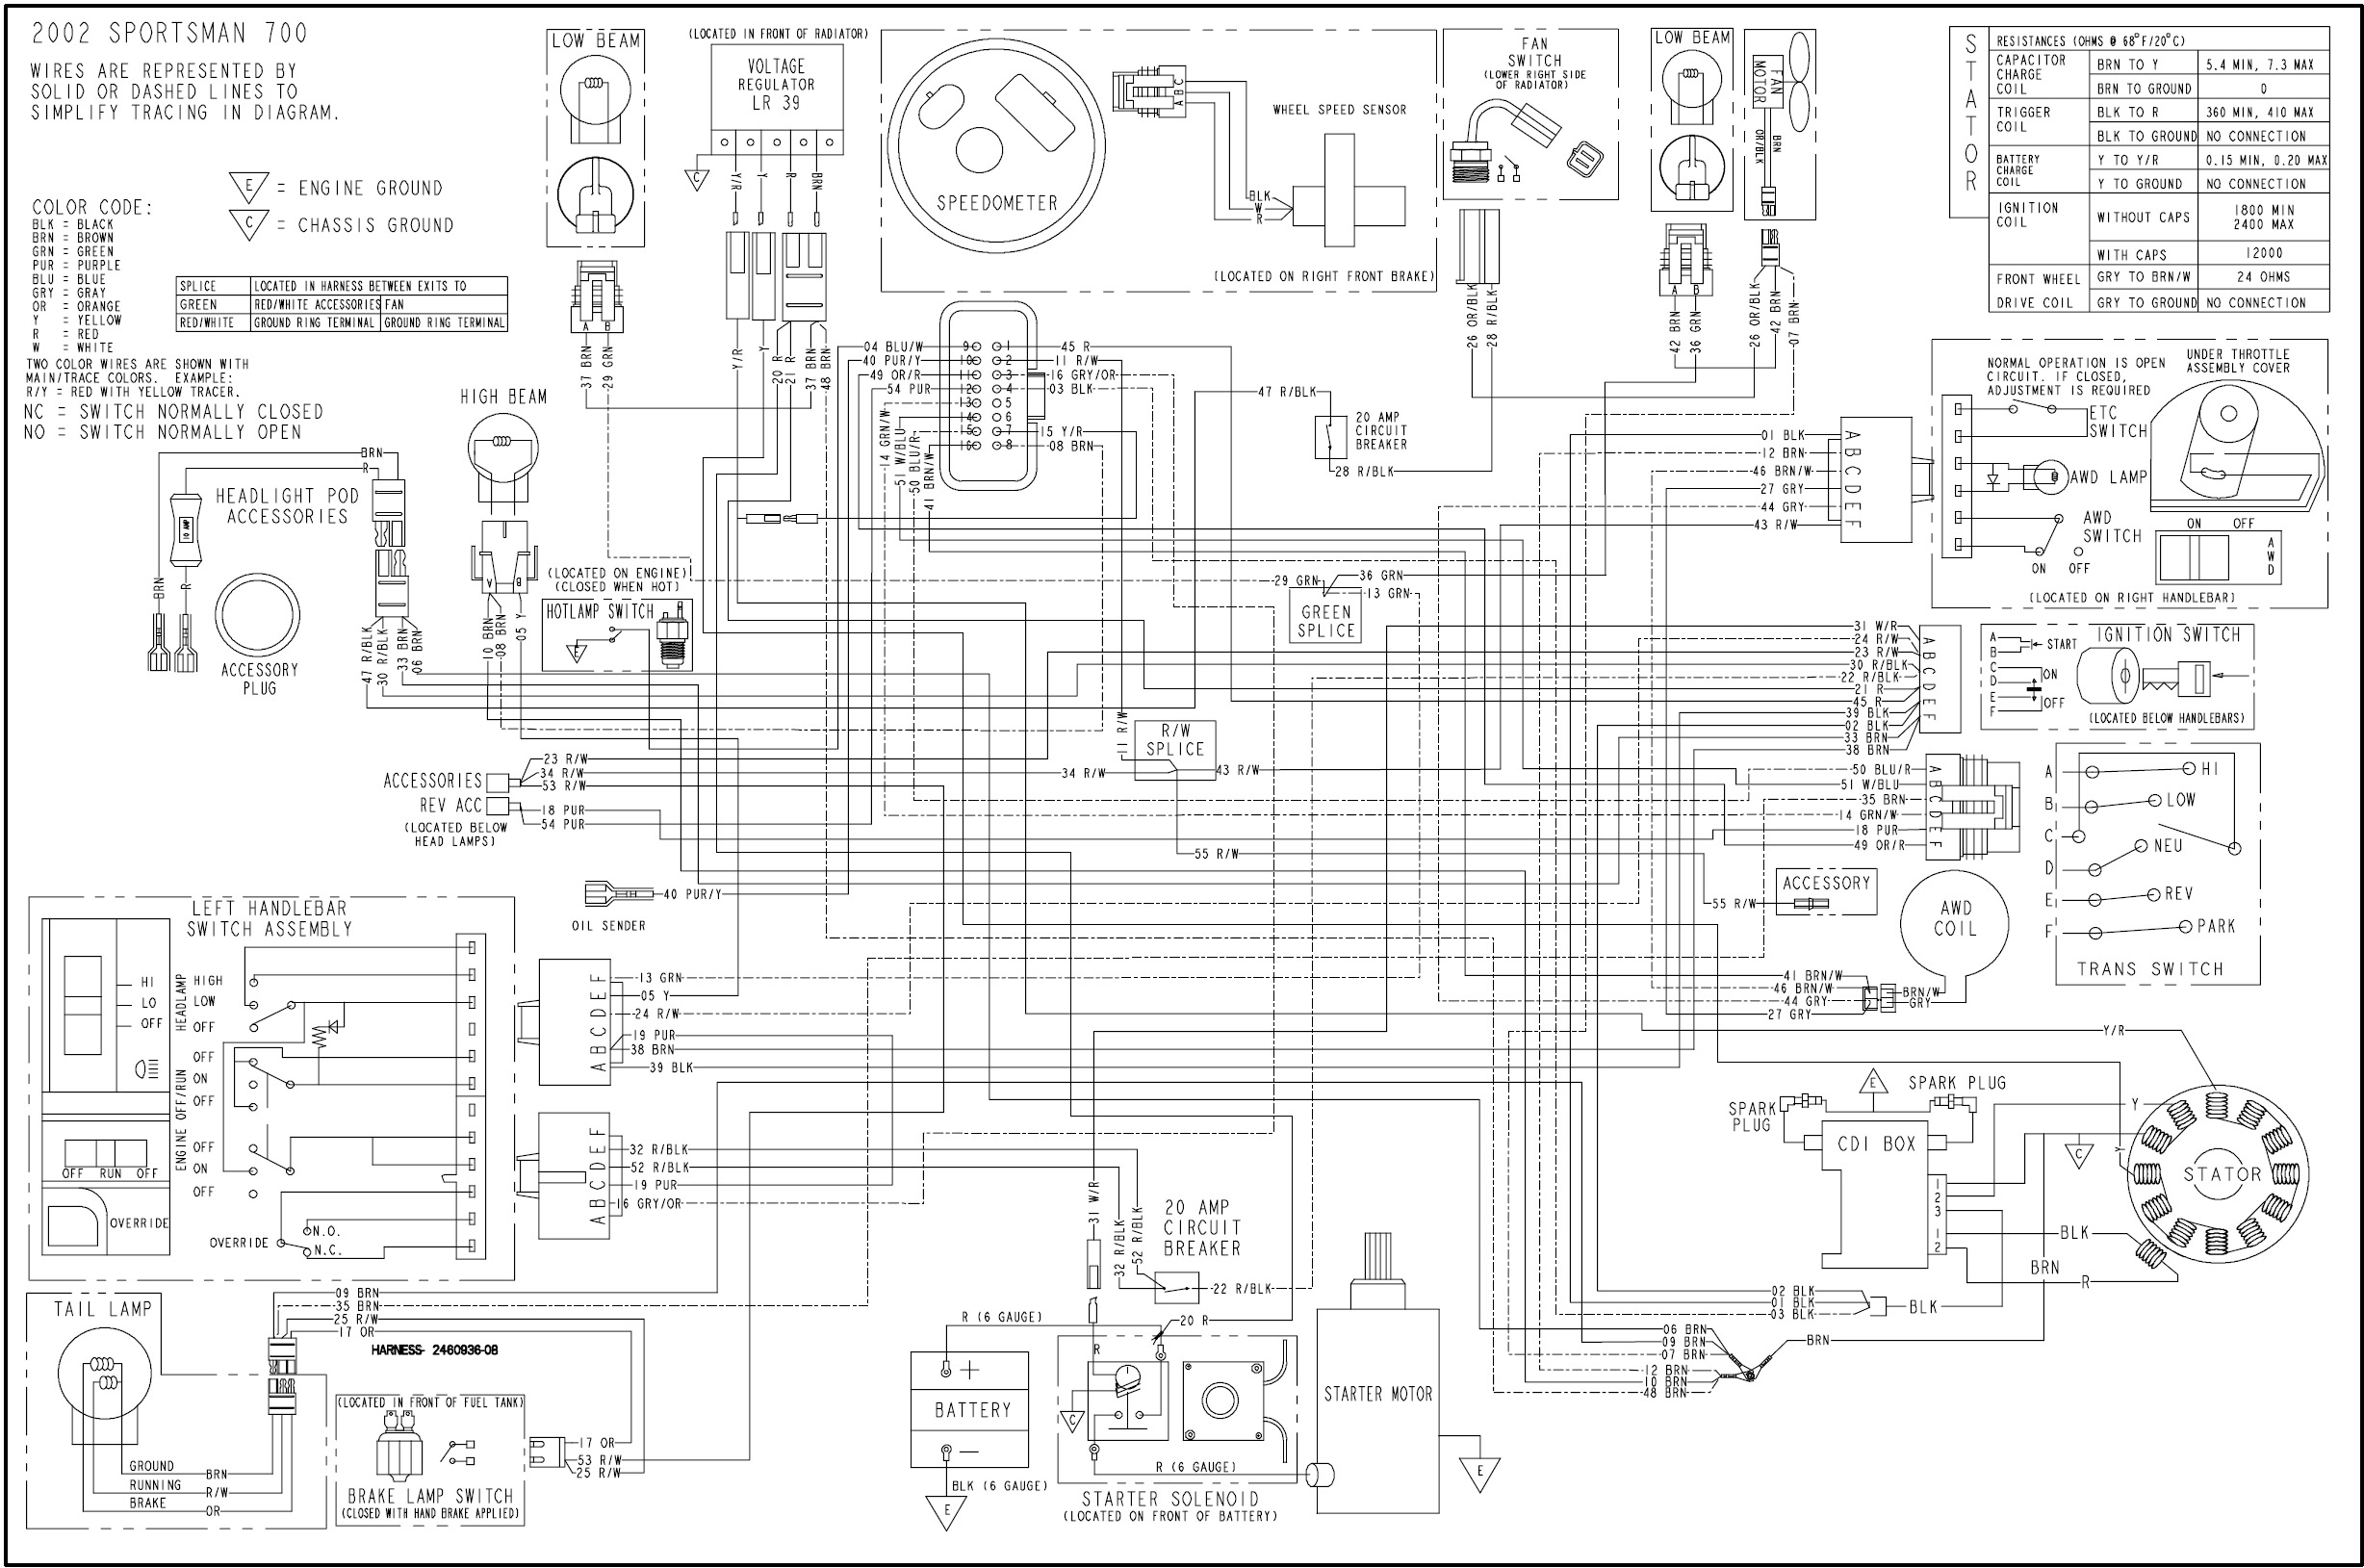 ✦DIAGRAM BASED✦ 02 Polaris Sportsman 700 Wiring Diagram COMPLETED DIAGRAM  BASE Wiring Diagram - LEO.JENKINS.TAPEDIAGRAM.PCINFORMI.IT